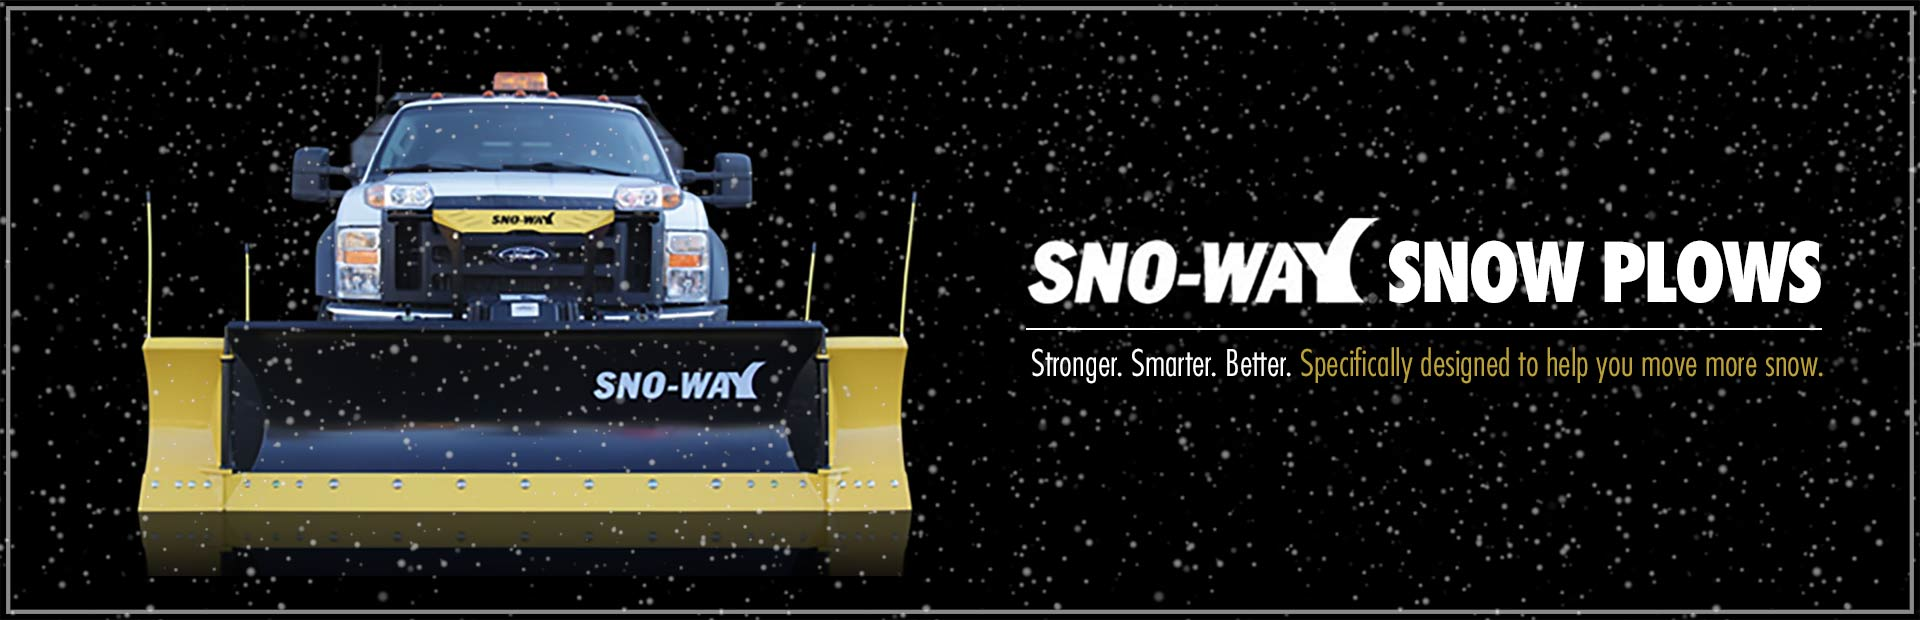 Sno-Way Snow Plows: Contact us for details.